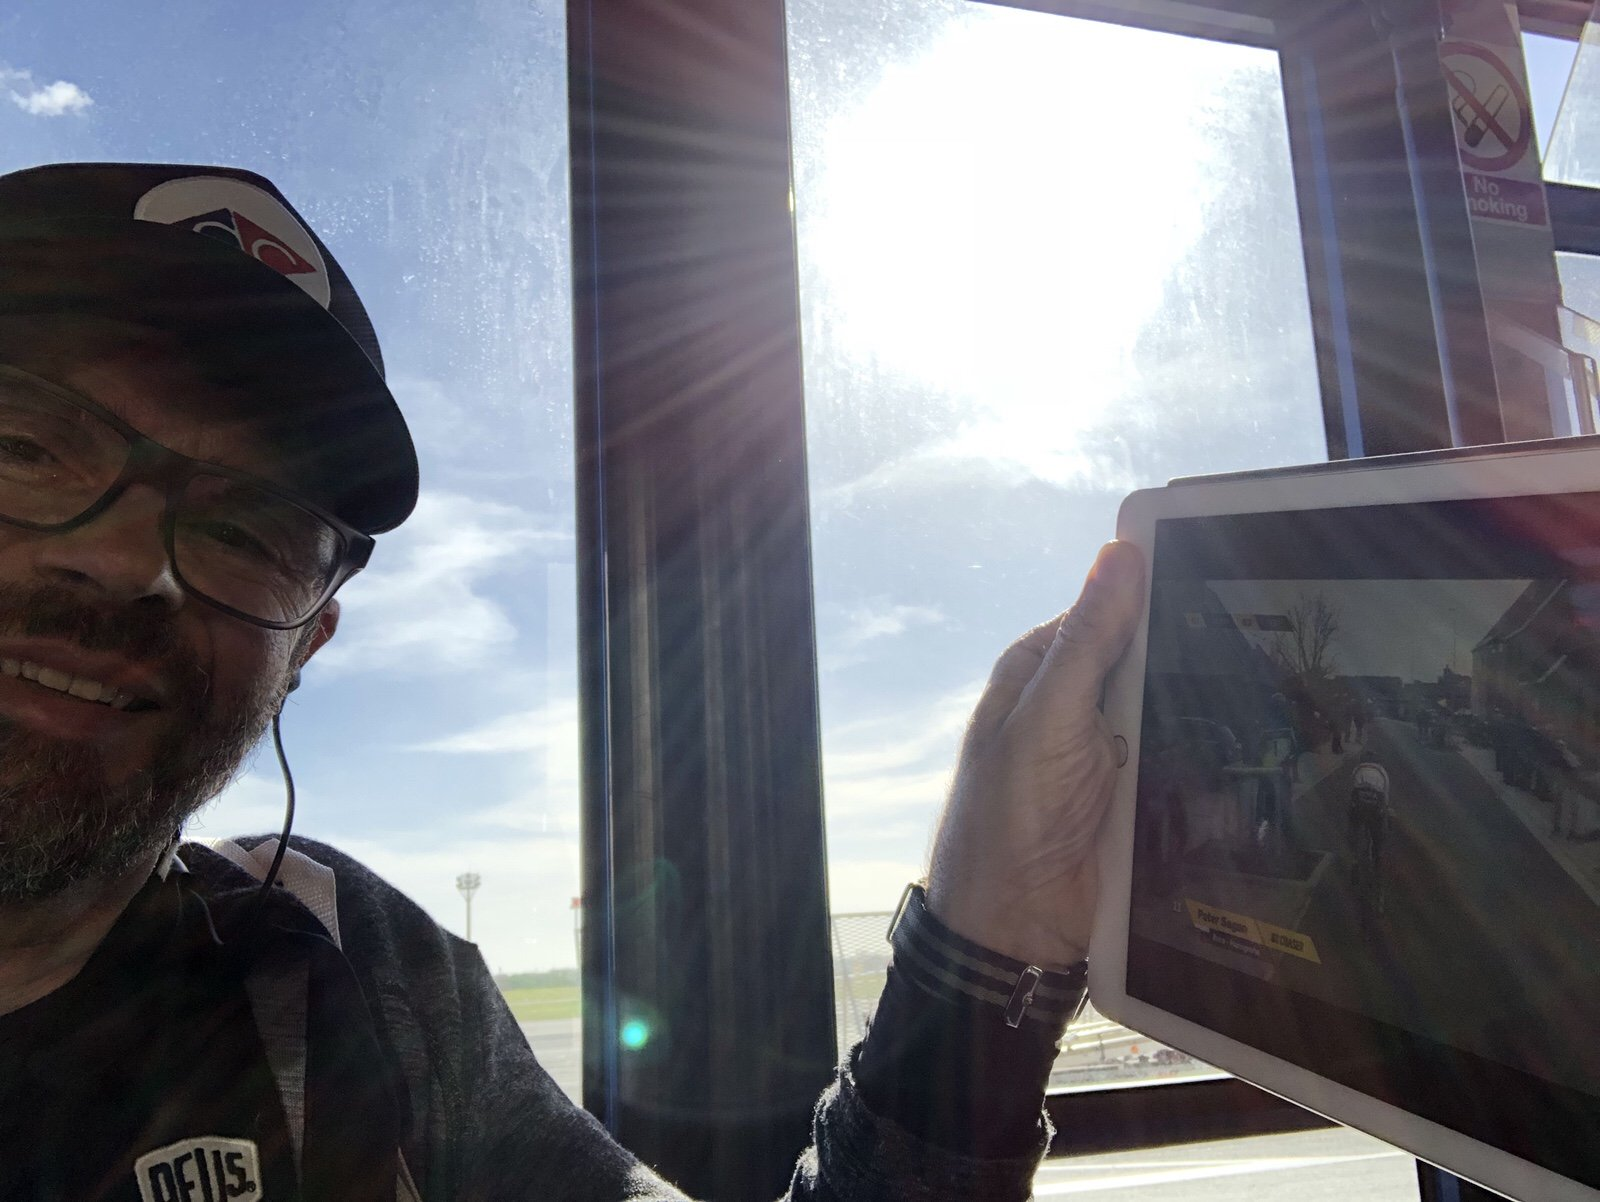 der blog im blog kw 13 2018 cyclingclaude. Black Bedroom Furniture Sets. Home Design Ideas